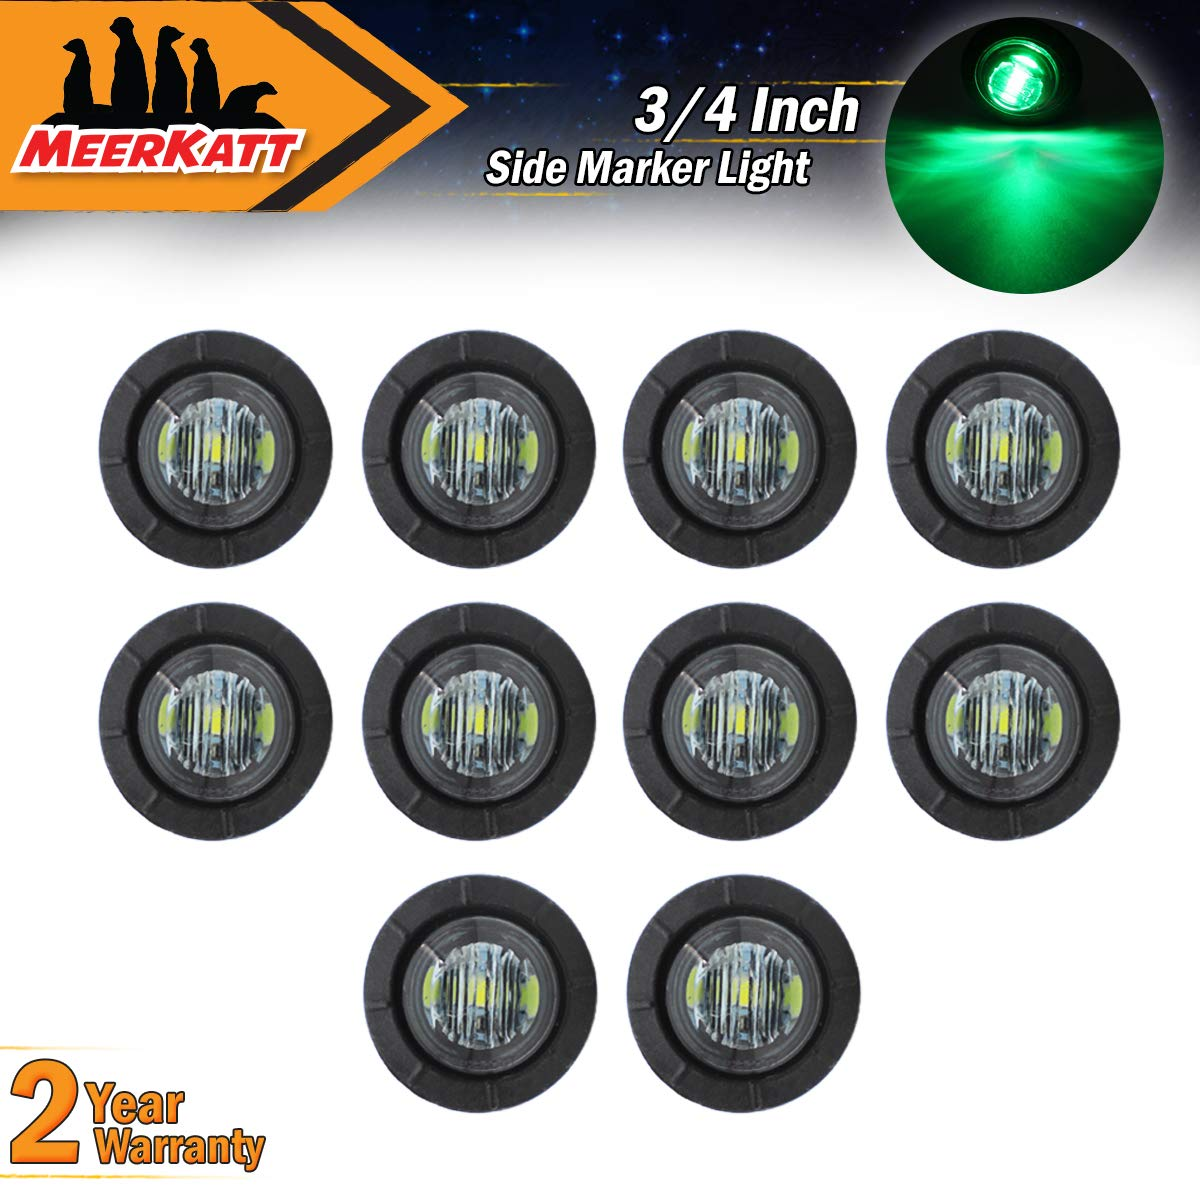 Meerkatt (Pack of 10) 3/4' Inch Mini Round Smoked Lens Red LED Button Side Marker Clearance SMD Lamp Bullet Super Bright Indicator Light Caravan Ferry Boat Trailer RV Truck grommets 12V DC Waterproof